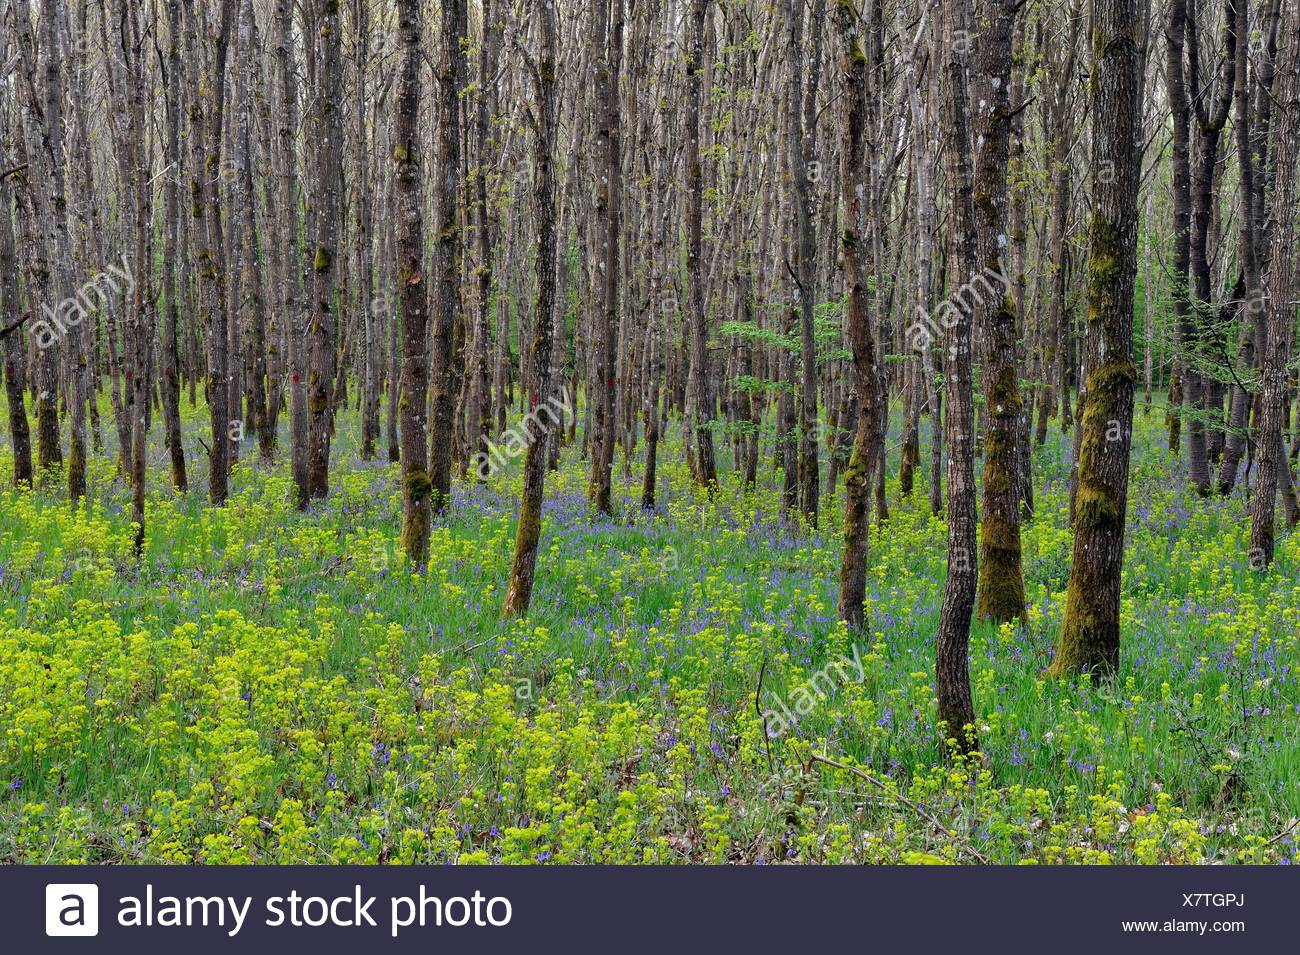 bluebell and euphorbia wood, oakery in the forest of Rambouillet, Yvelines department, Ile de France region, France, Europe. - Stock Image